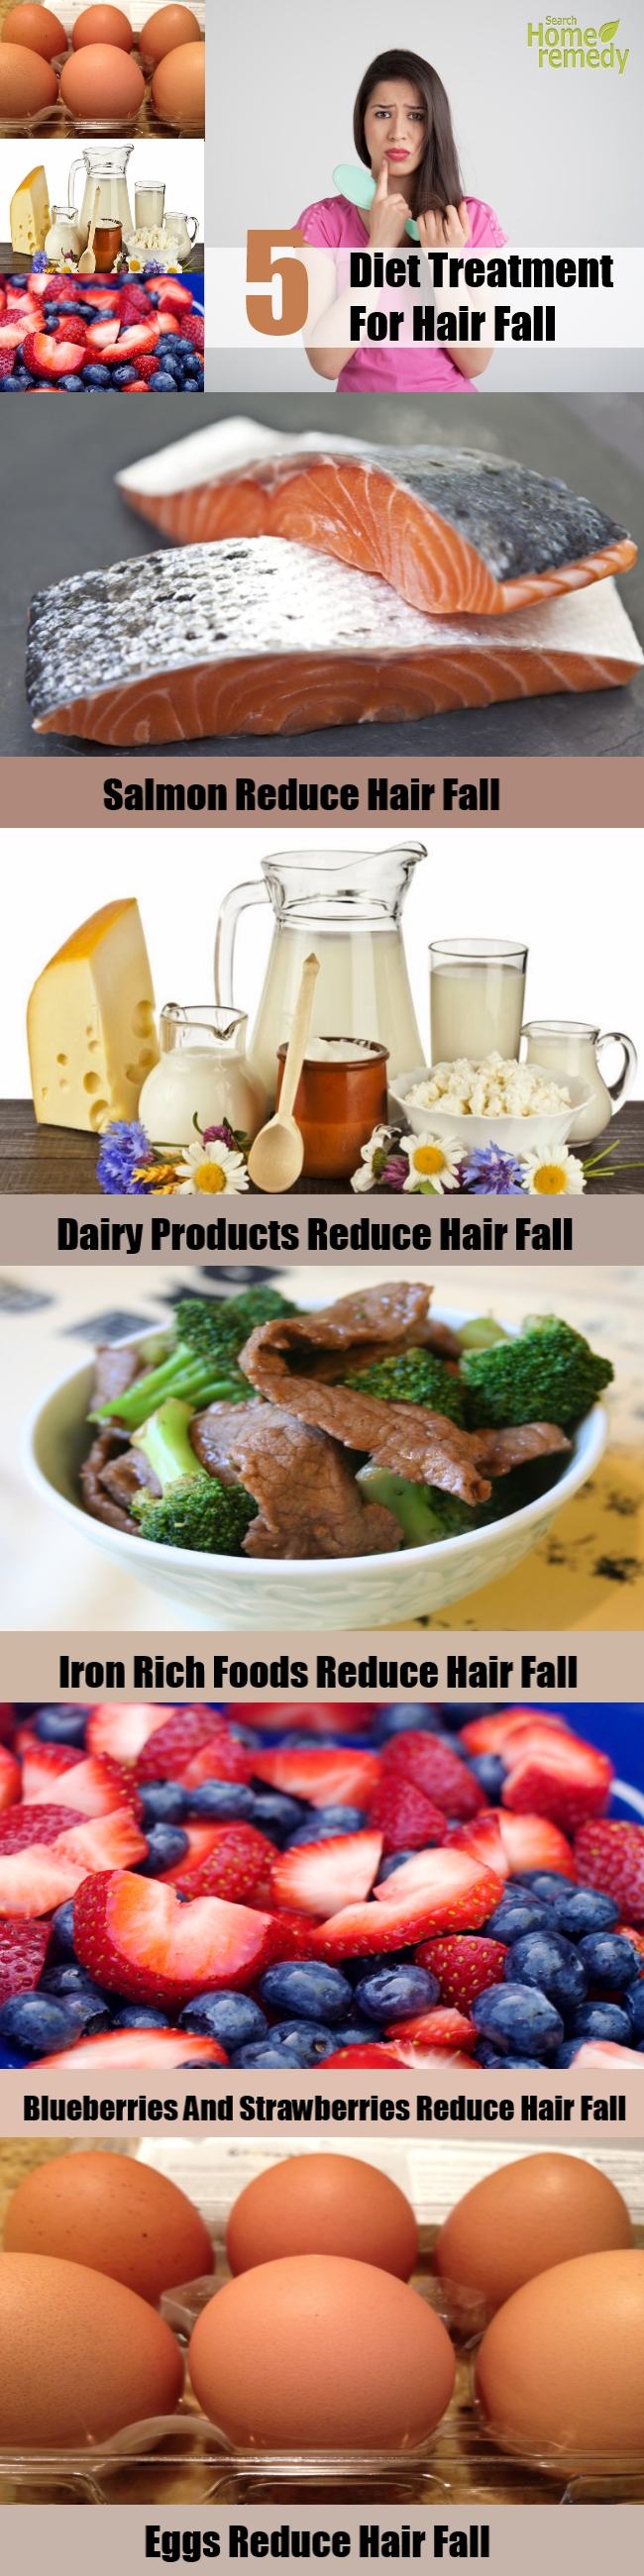 5 Top Diet Treatment For Hair Fall